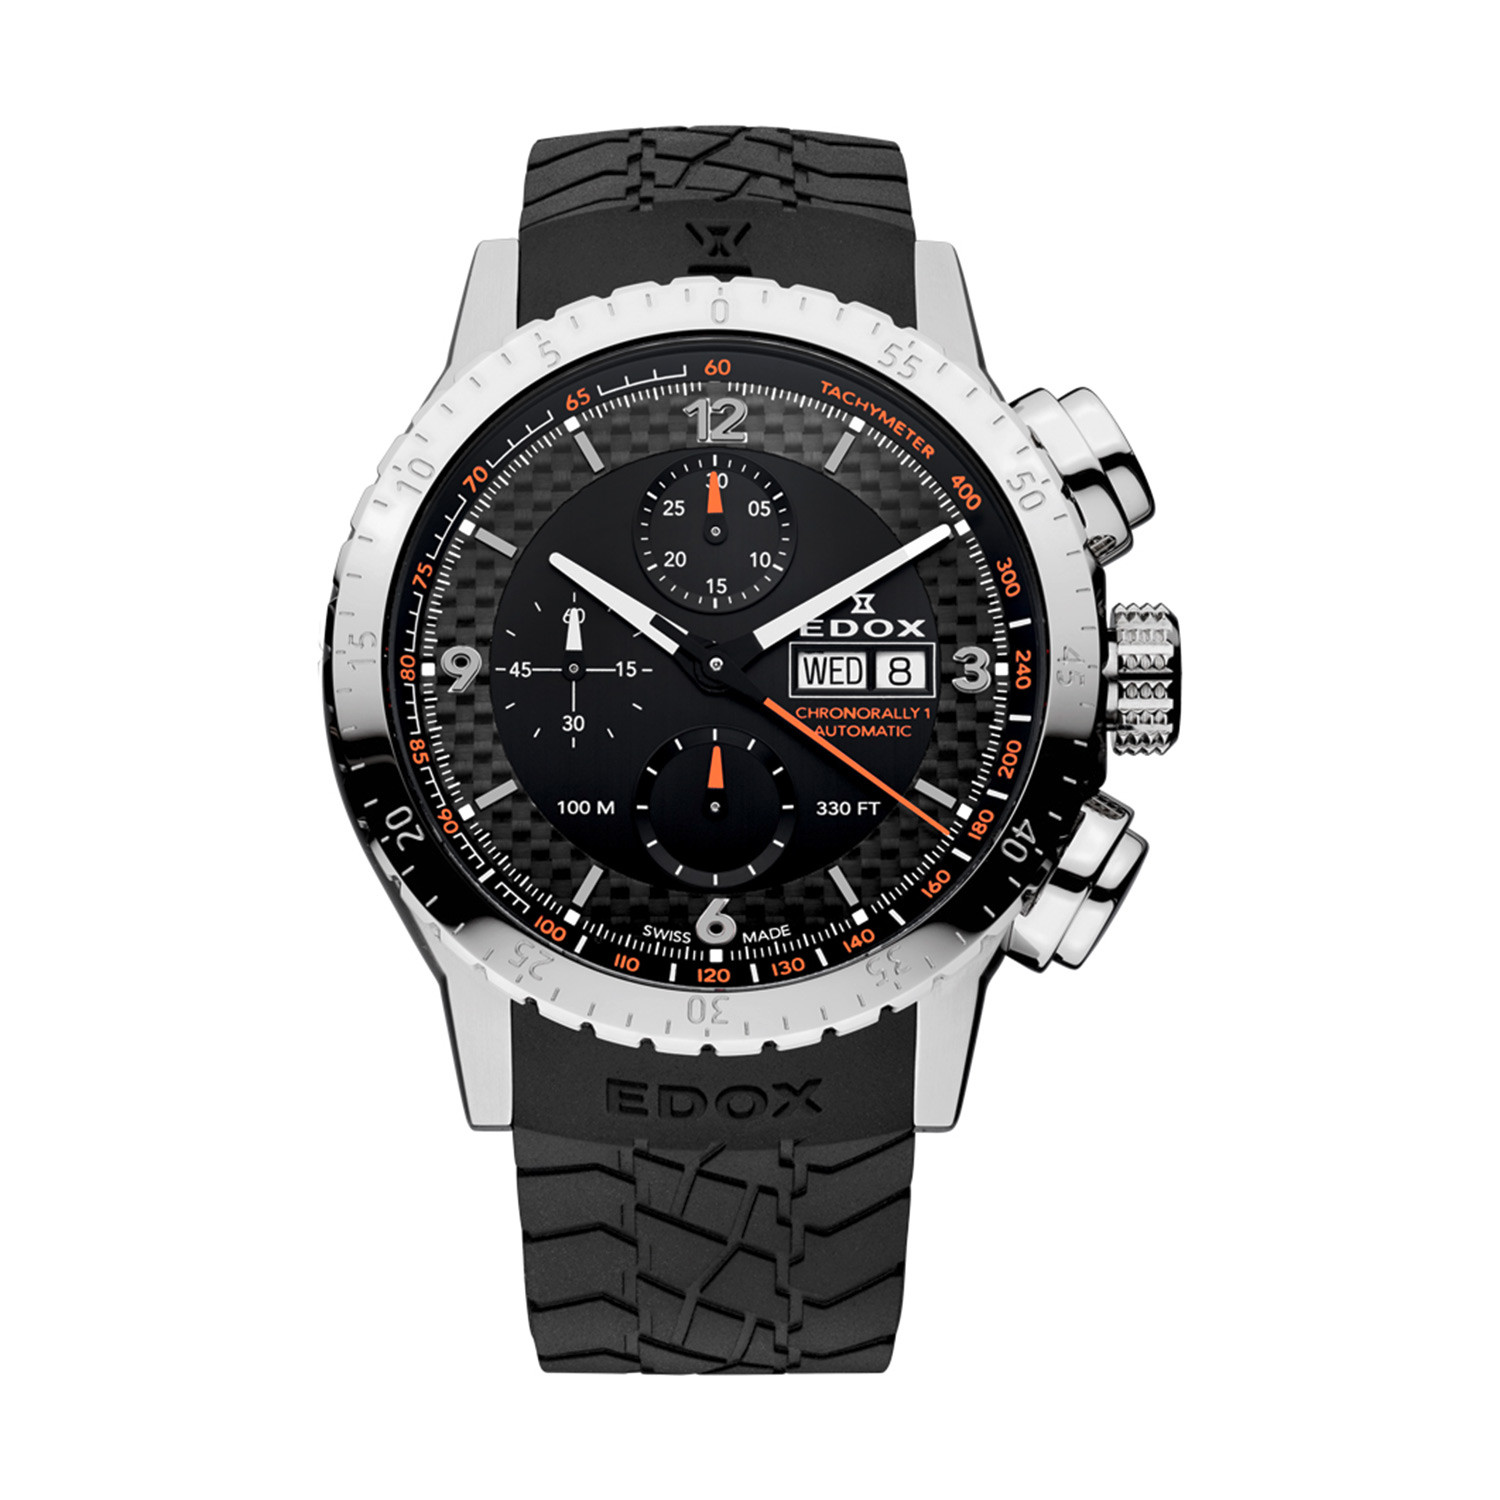 Chronorally 1 Chronograph    Automatic    01118 3 NO - Edox - Touch ... f79f11c1783